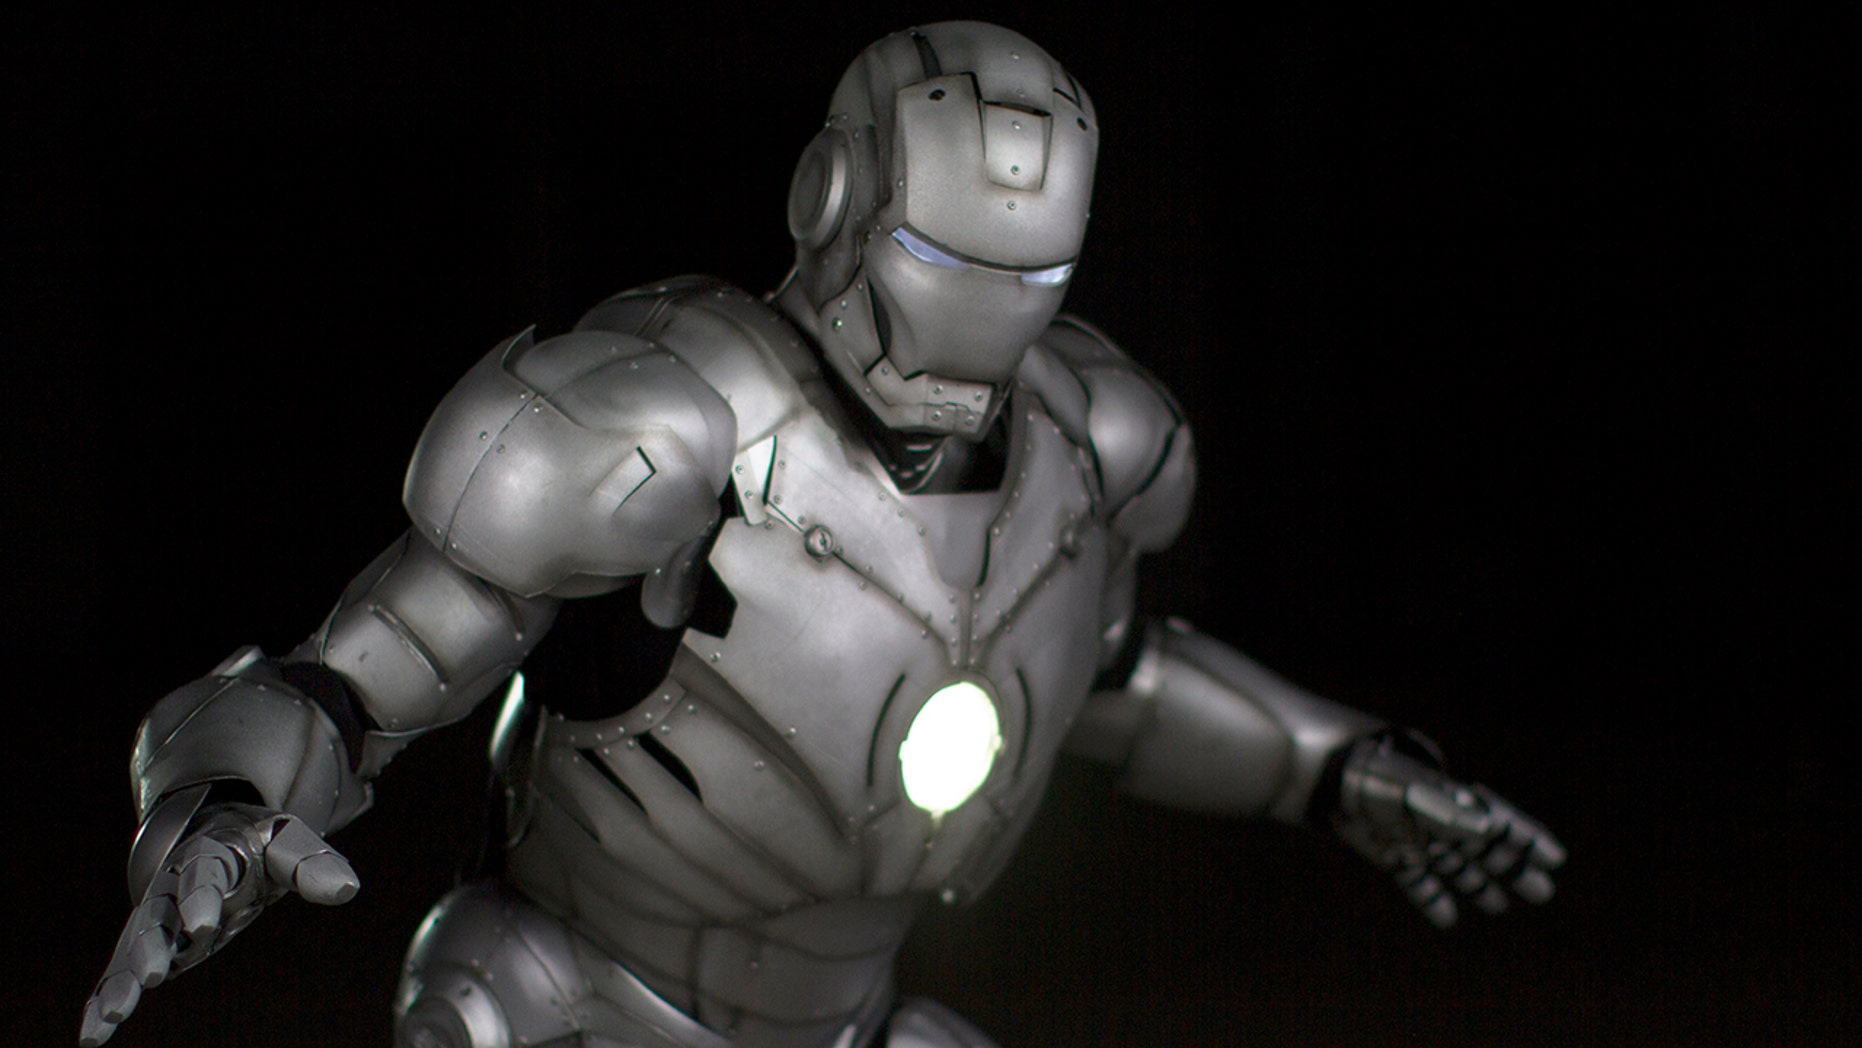 Beauty shots of Adam Savage's 3D printed Iron Man suit, with his helmet. (Credit: Discovery Channel)